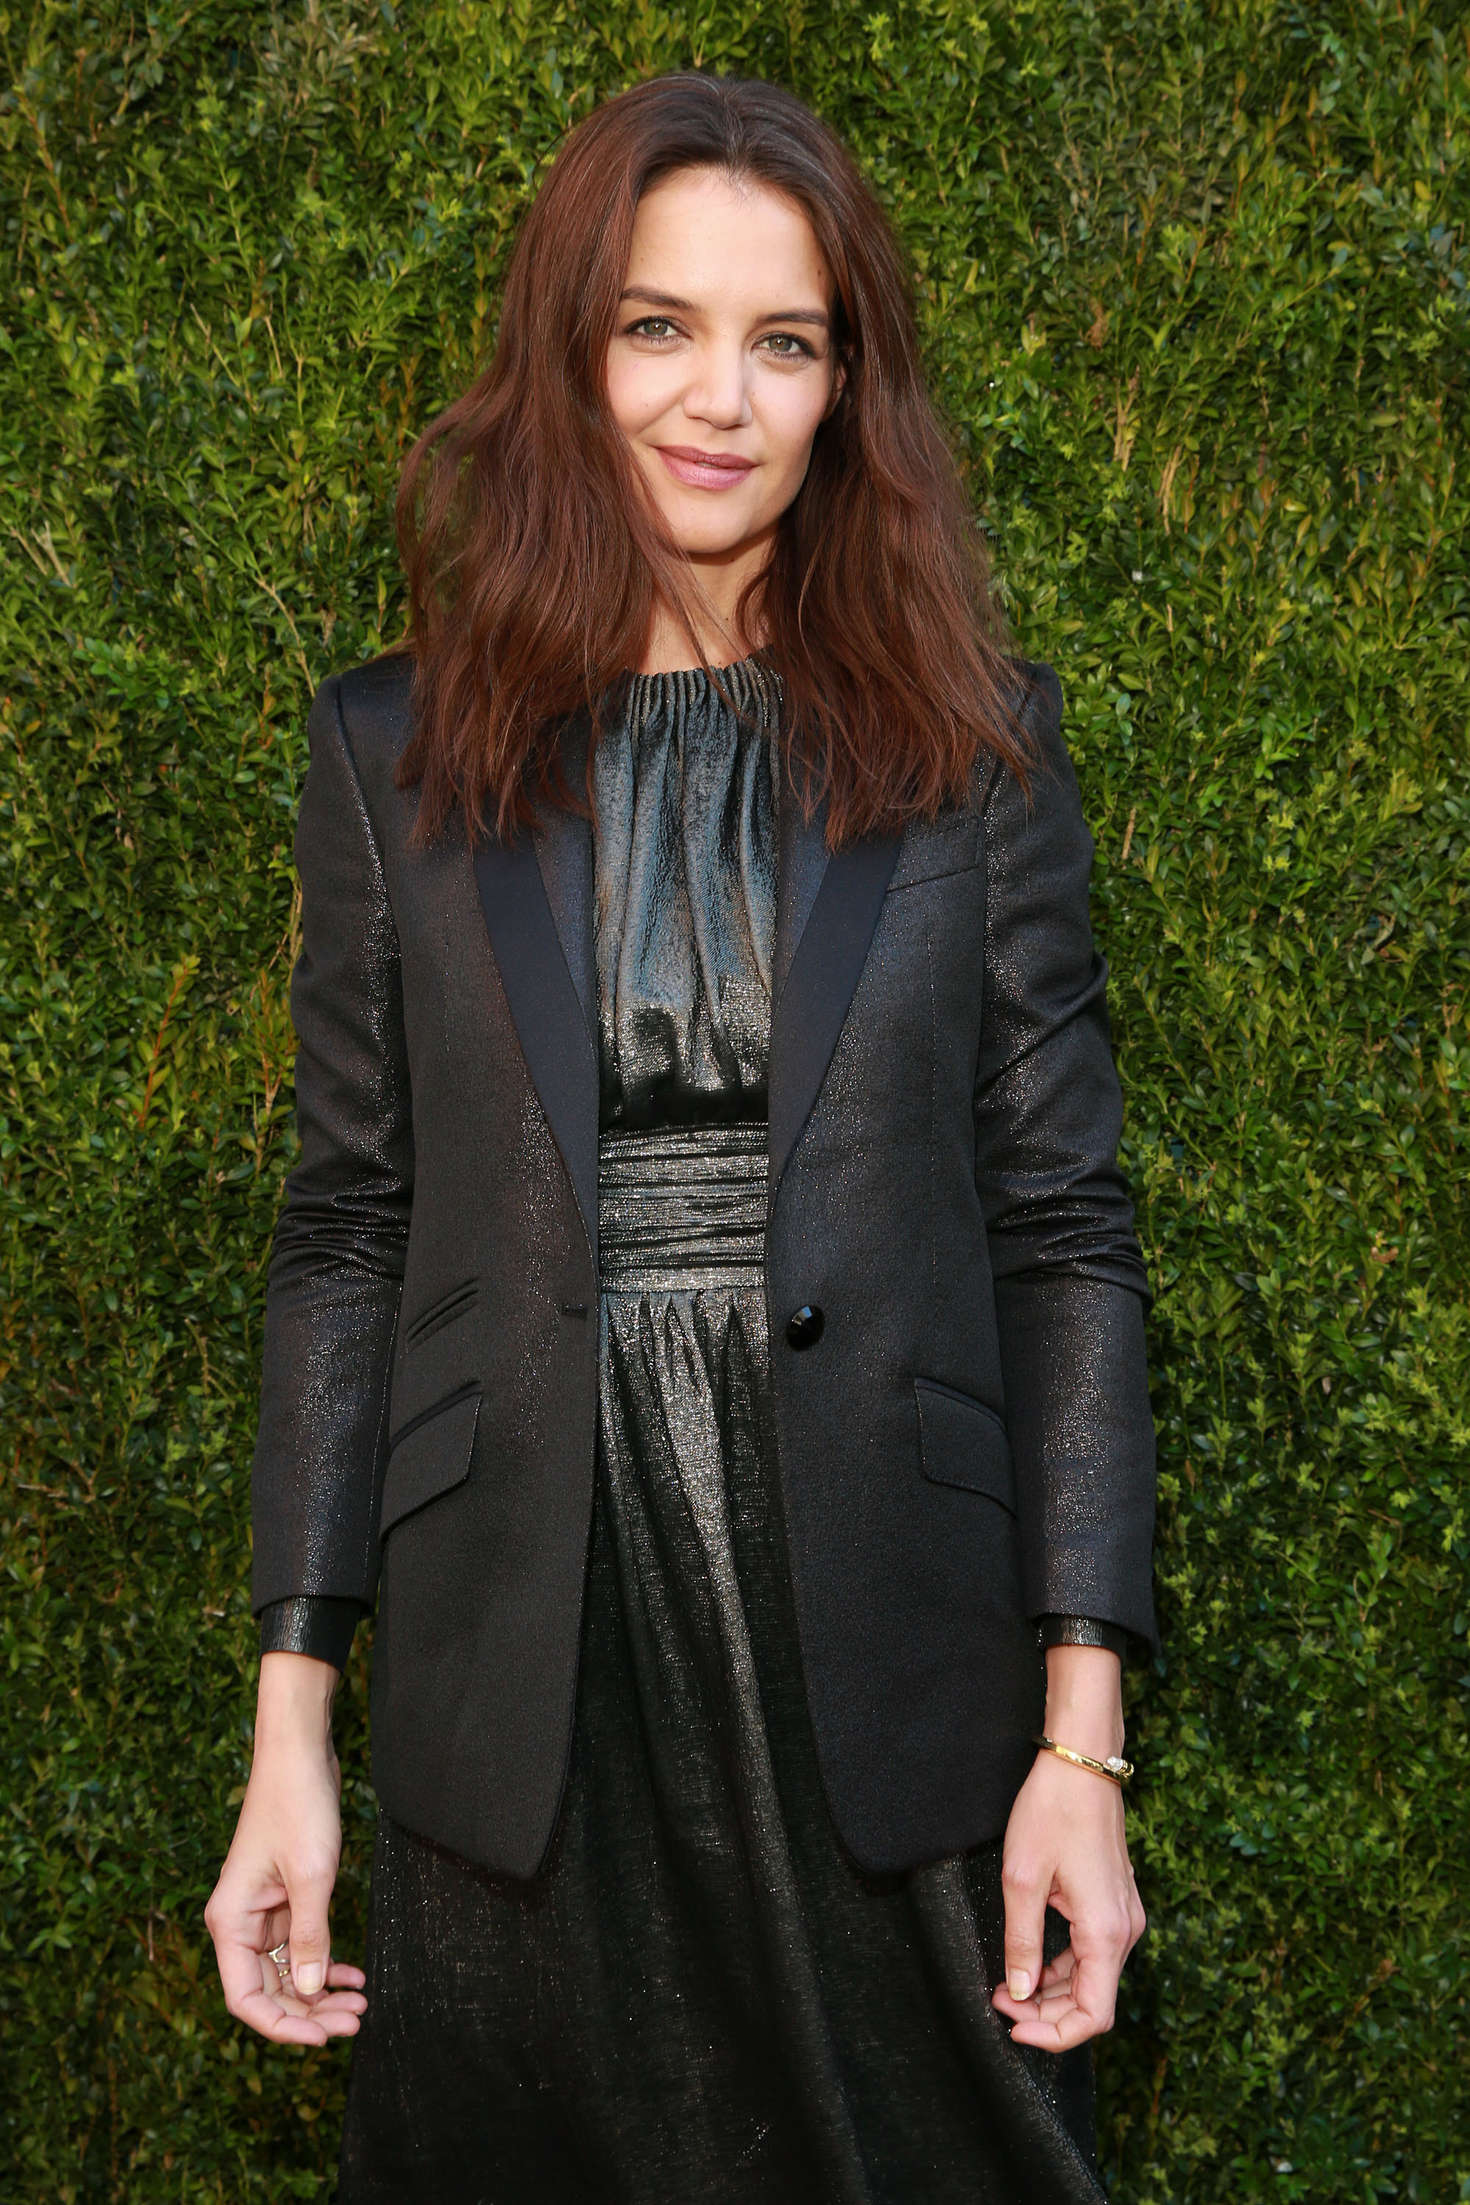 Katie Holmes - Women Filmmakers Luncheon at Tribeca Film Festival 2016 in NY